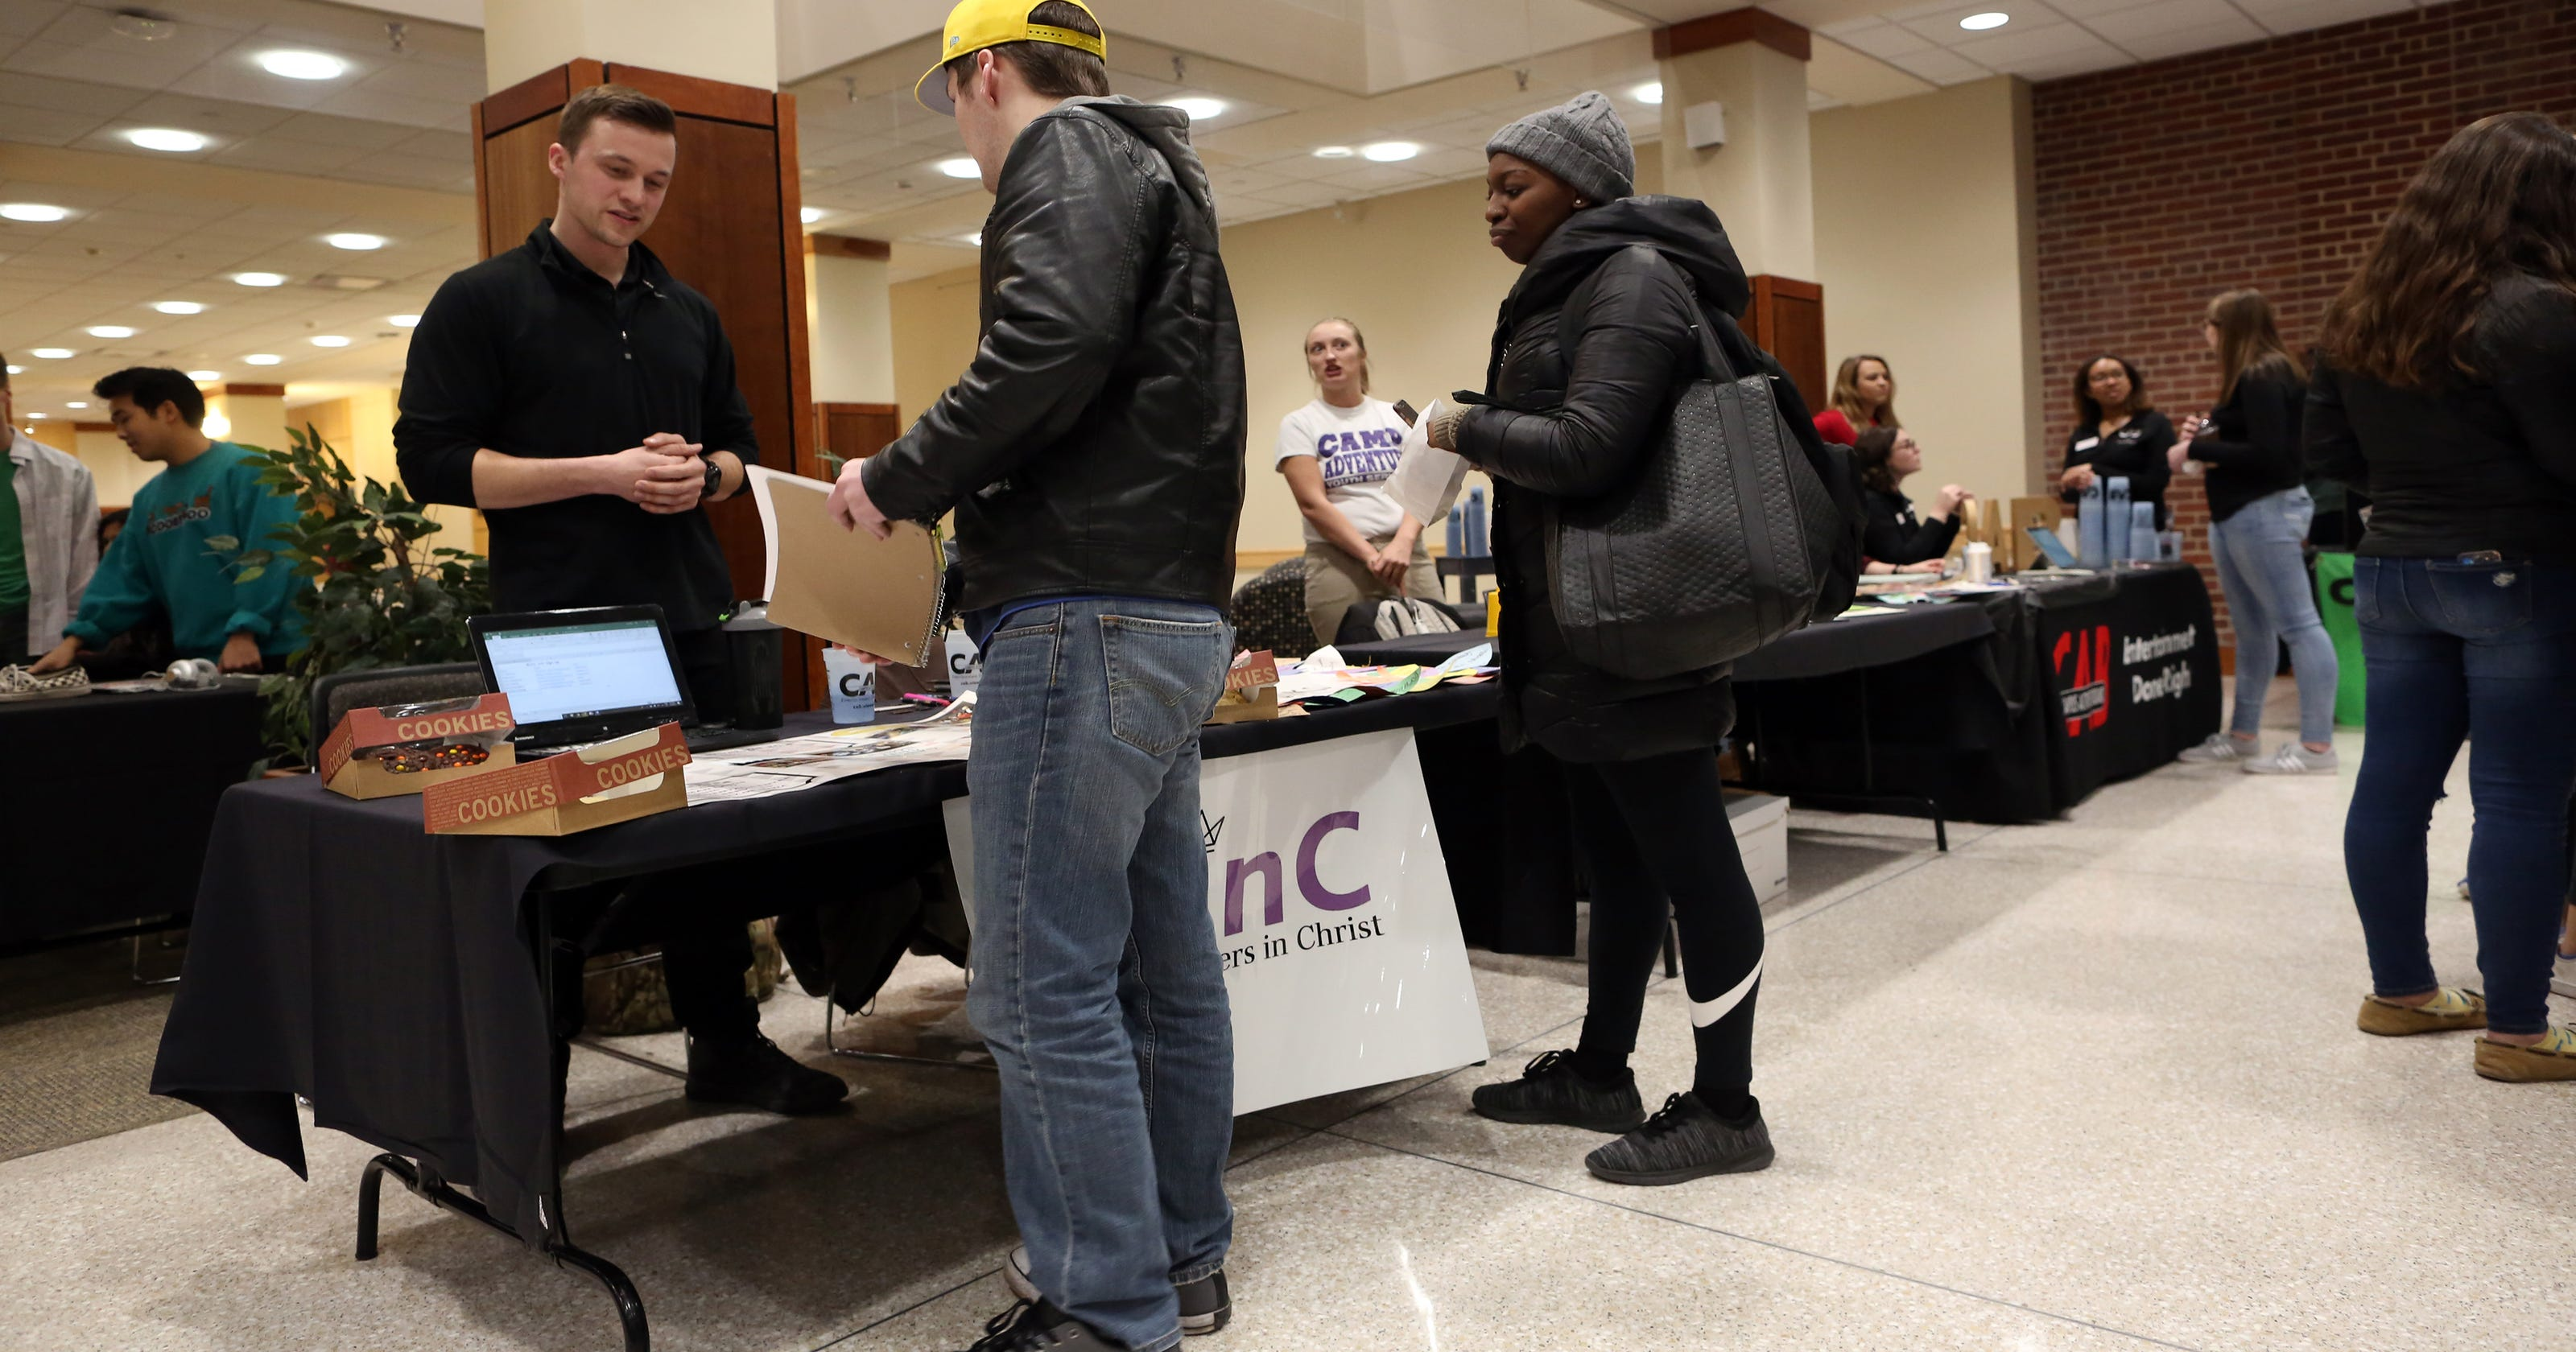 Conservative students say universities are 'stifling' free speech on Iowa  campuses